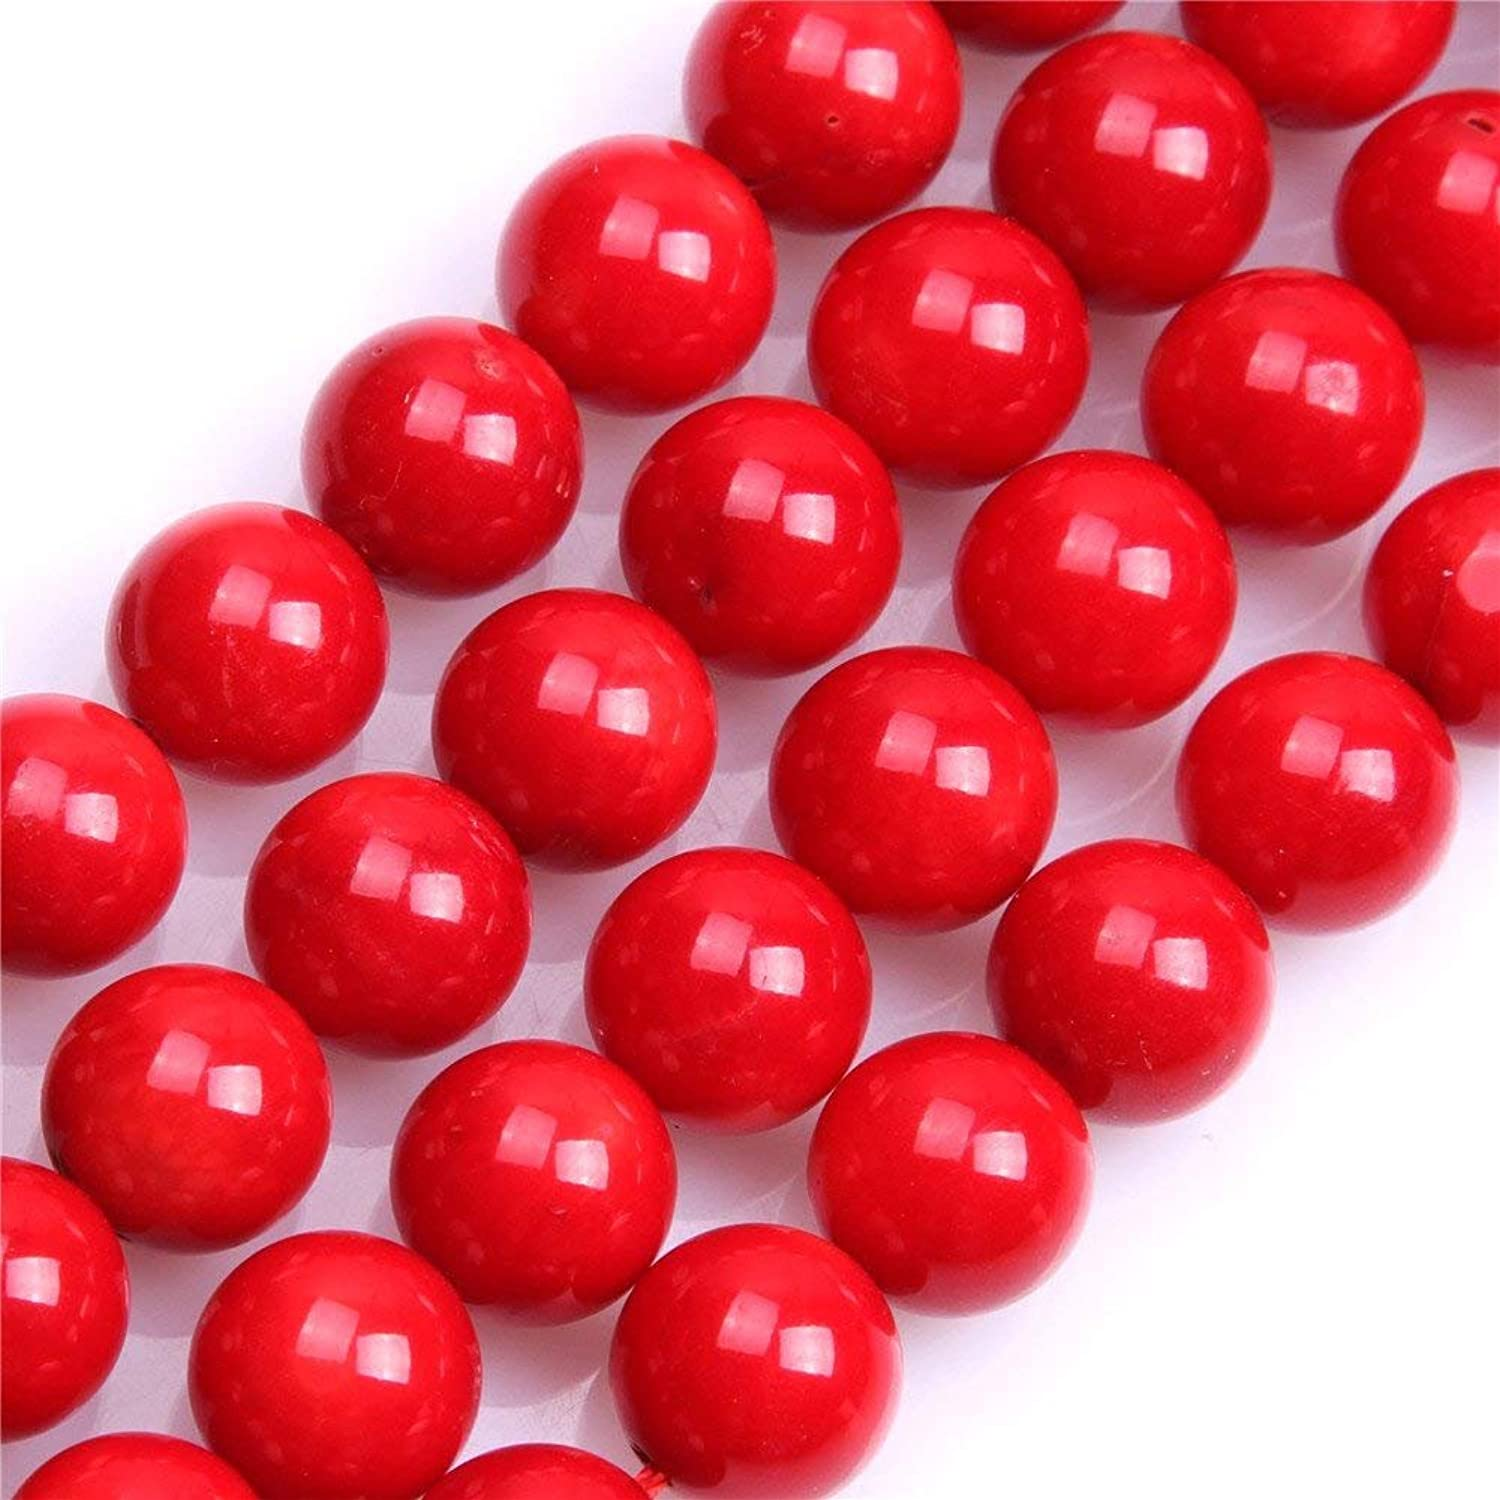 8mm Red Coral Beads Round Loose Gemstone Beads for Jewelry Making Strand 15 Inch (4750pcs)